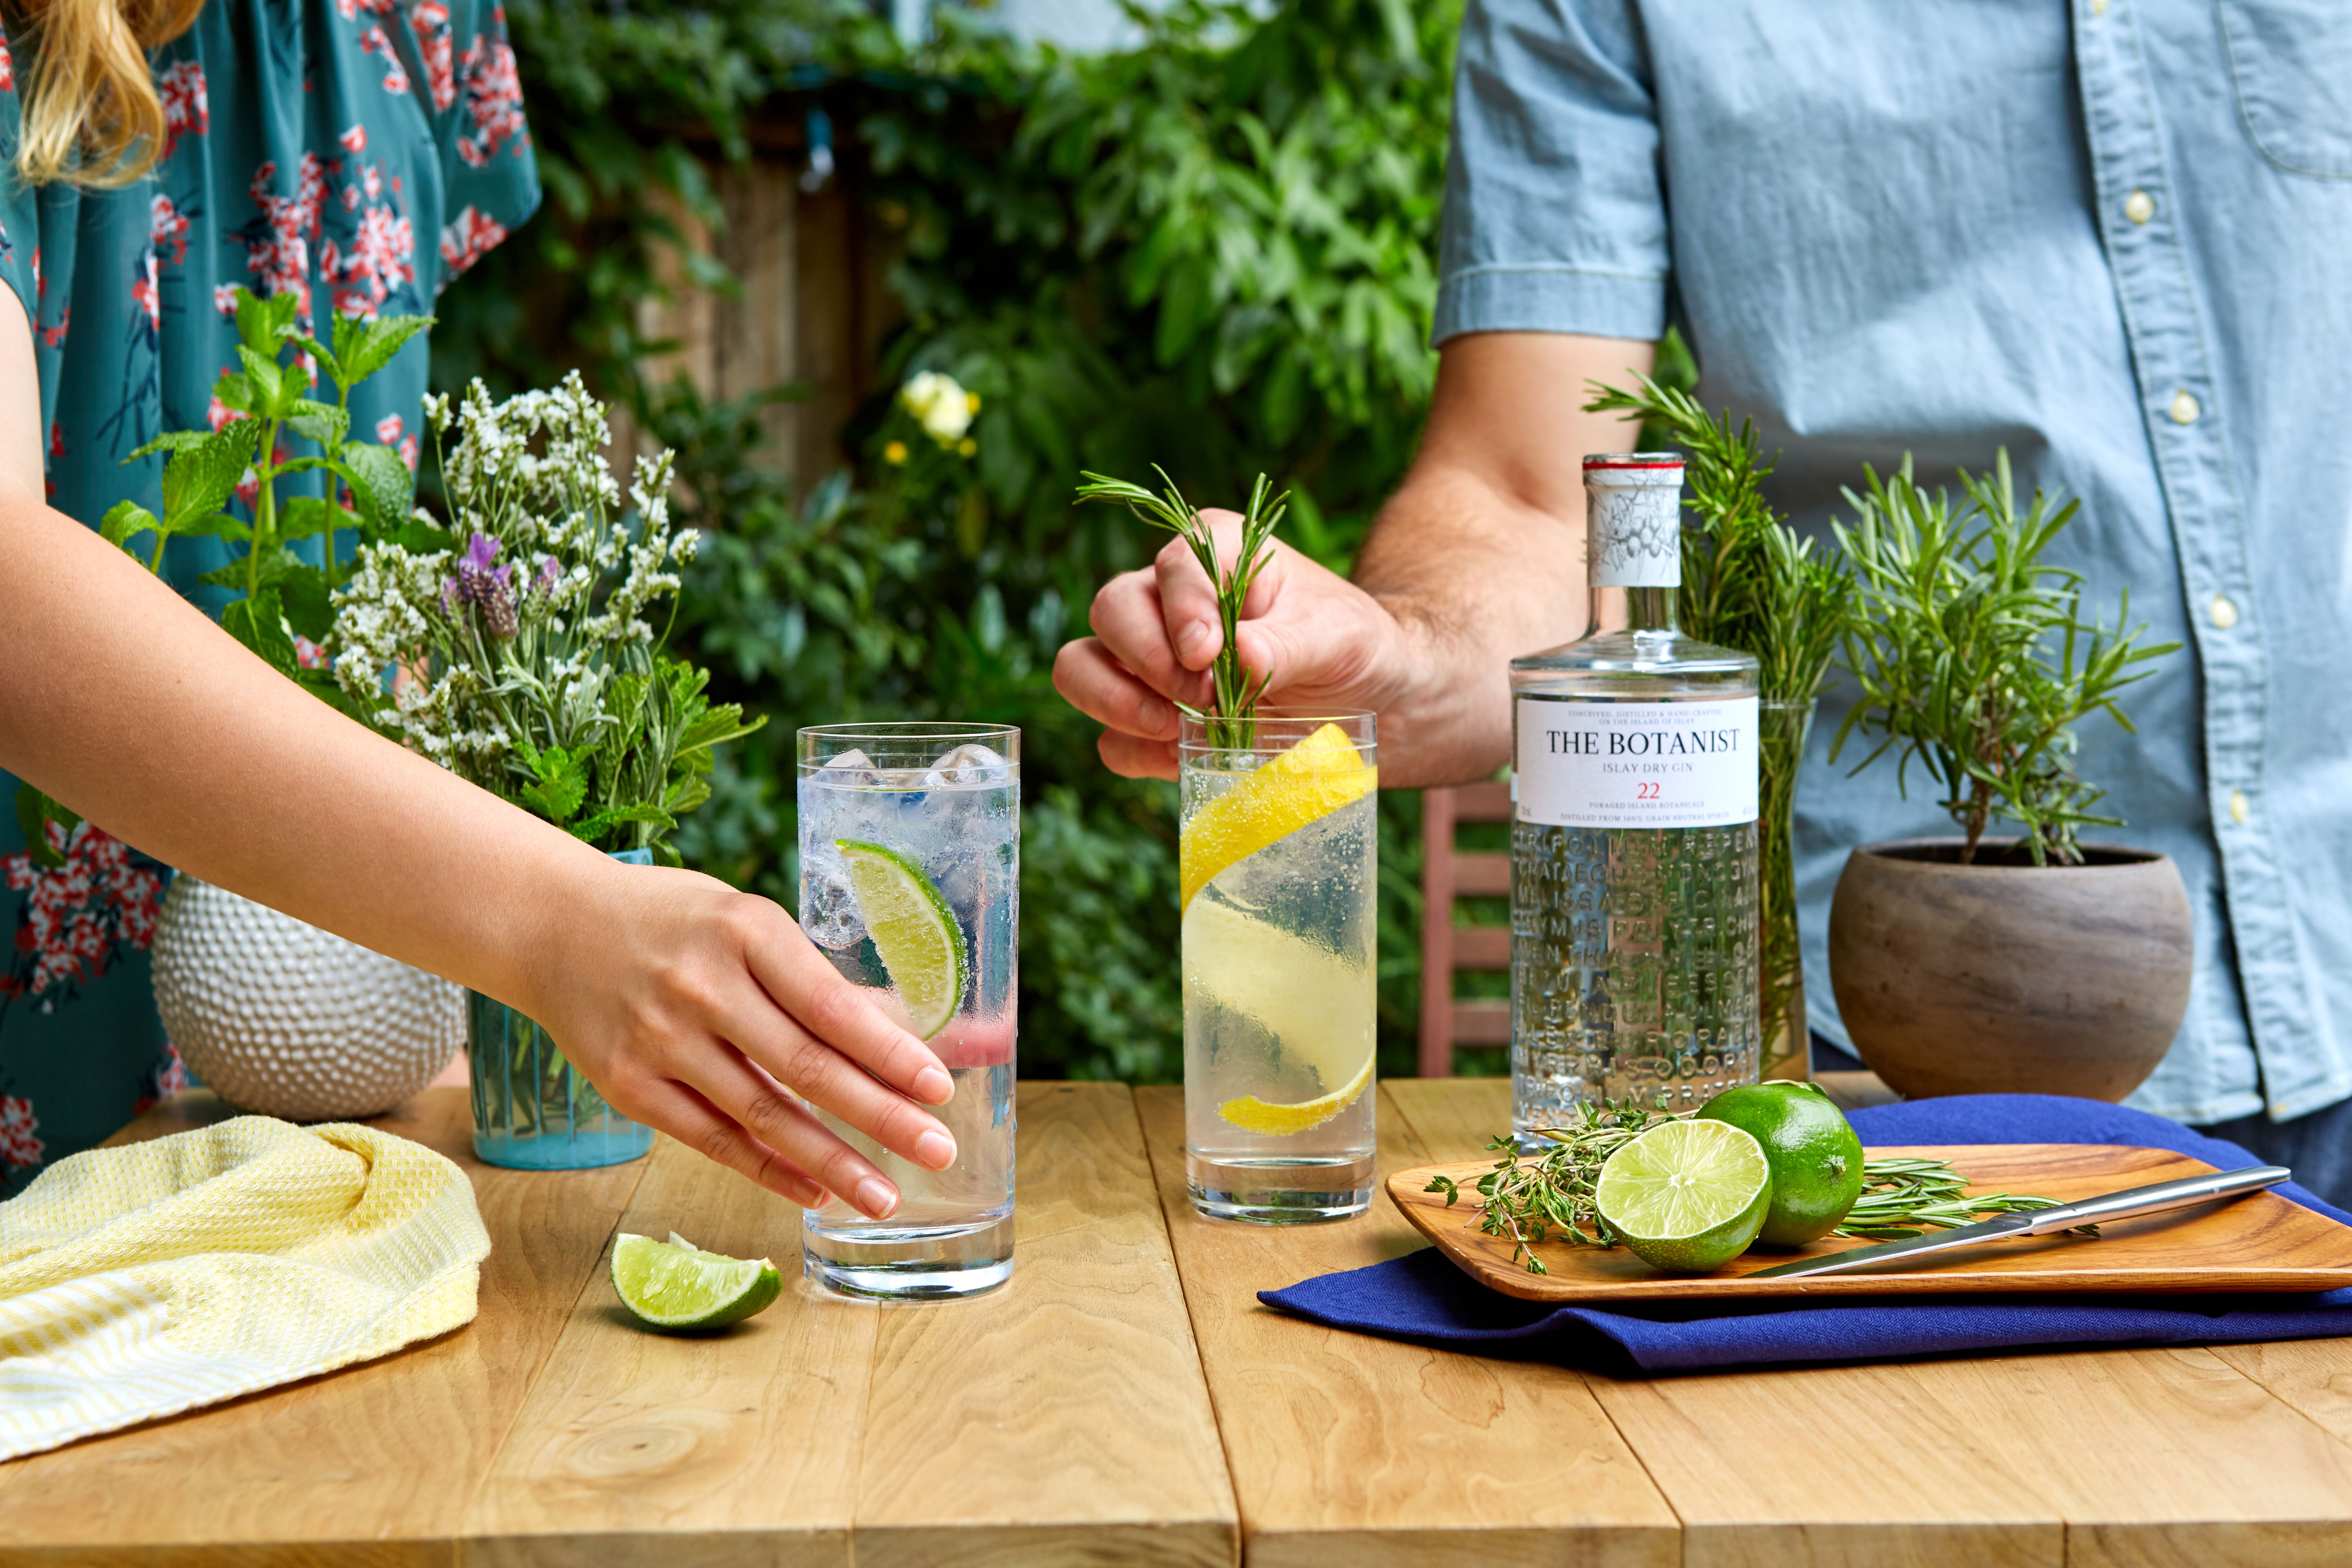 Join Eater and the Botanist for a Gin and Tonic Competition